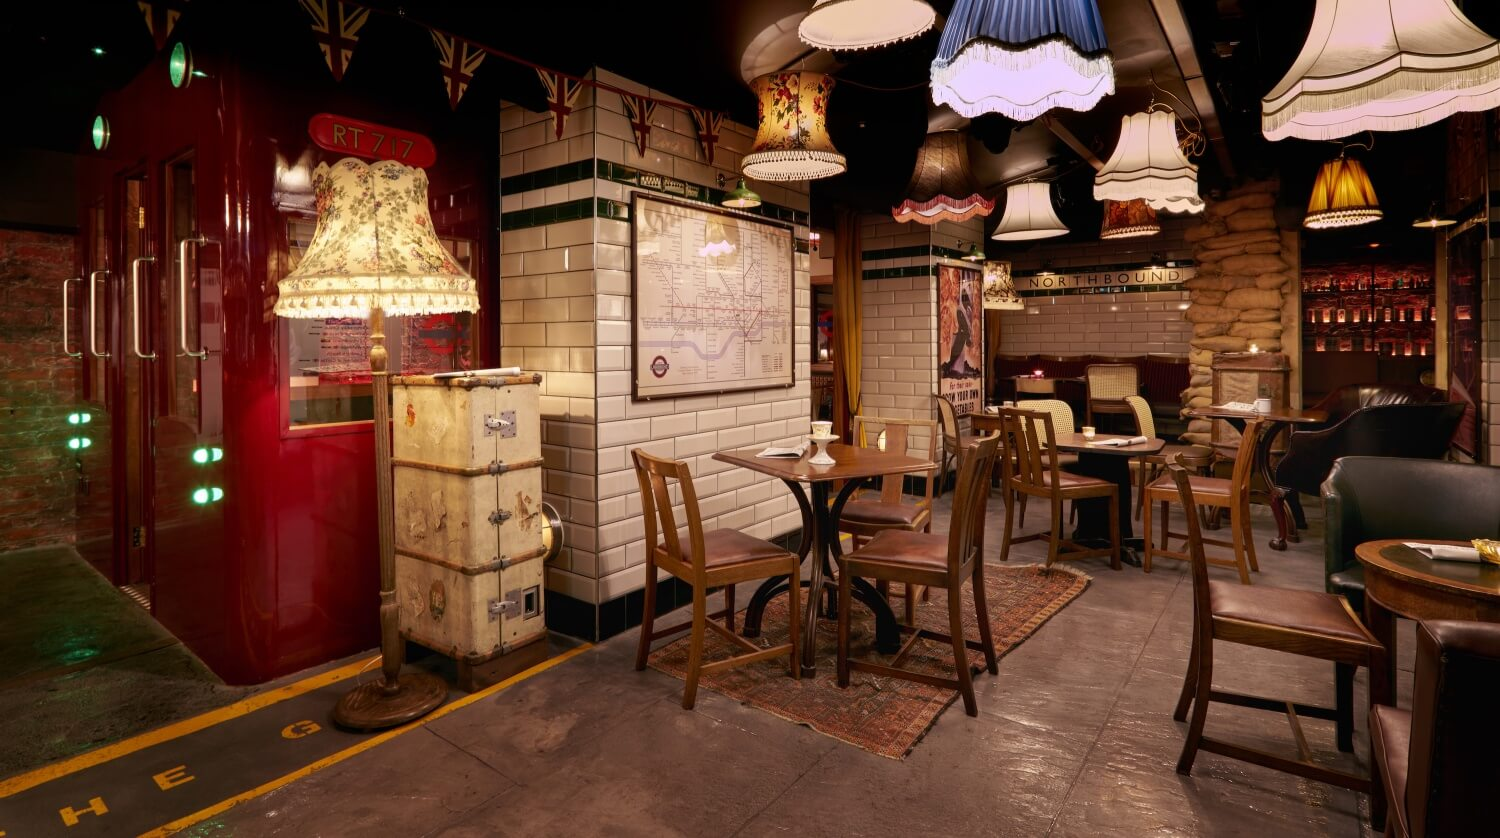 Cahoots Bar London — Cahoots: Let's Party Like It's 1946